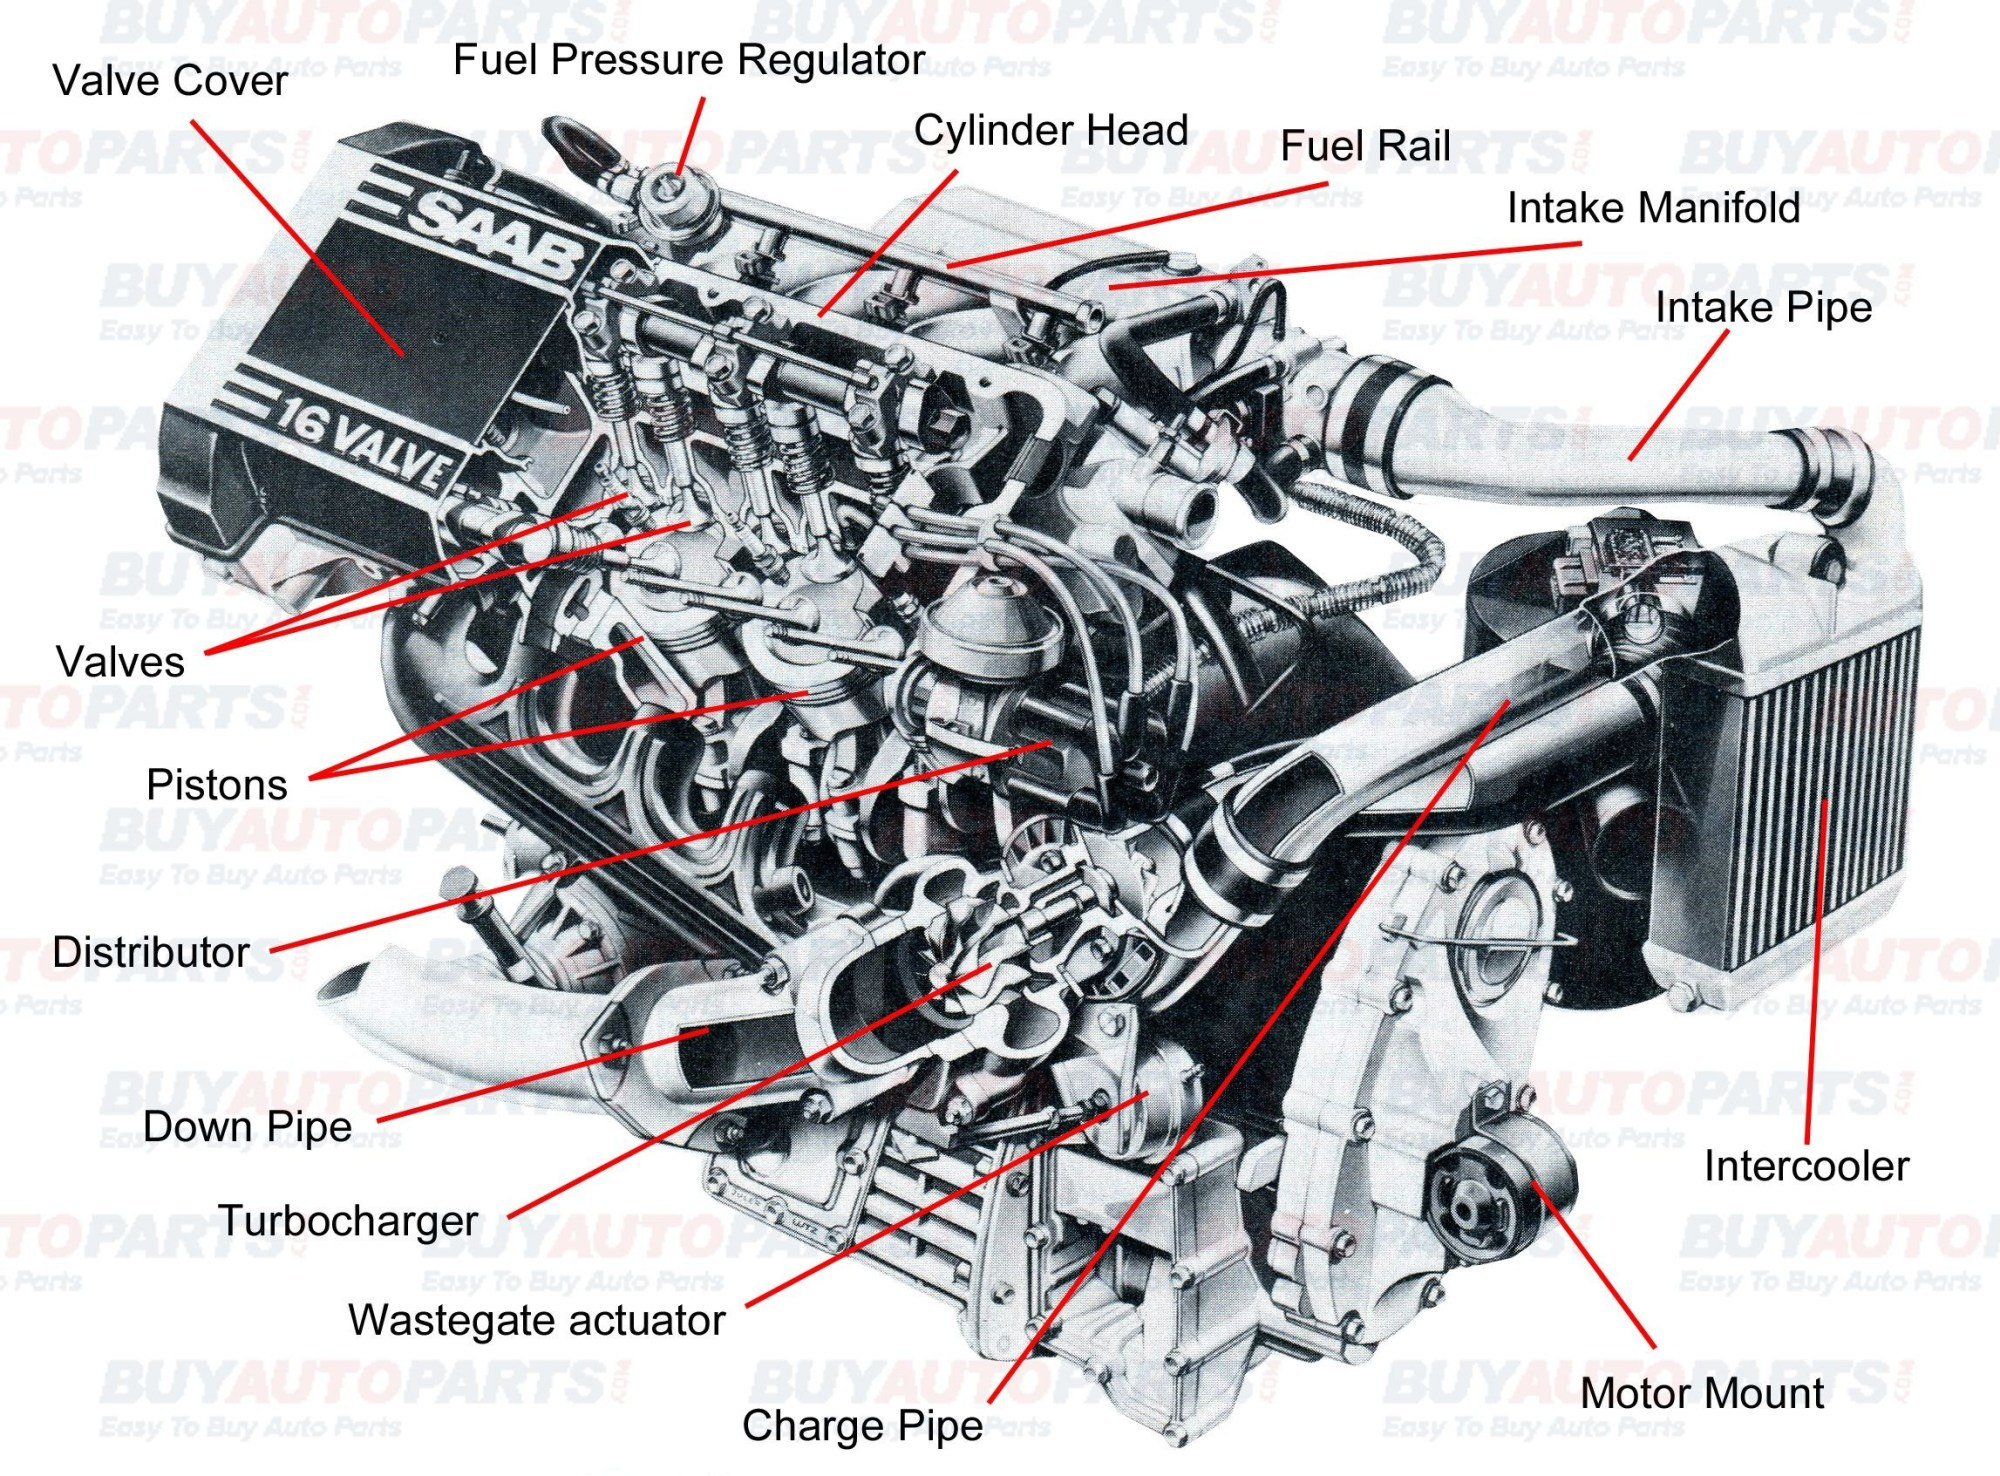 hight resolution of camshaft parts diagram all internal bustion engines have the same basic ponents the of camshaft parts